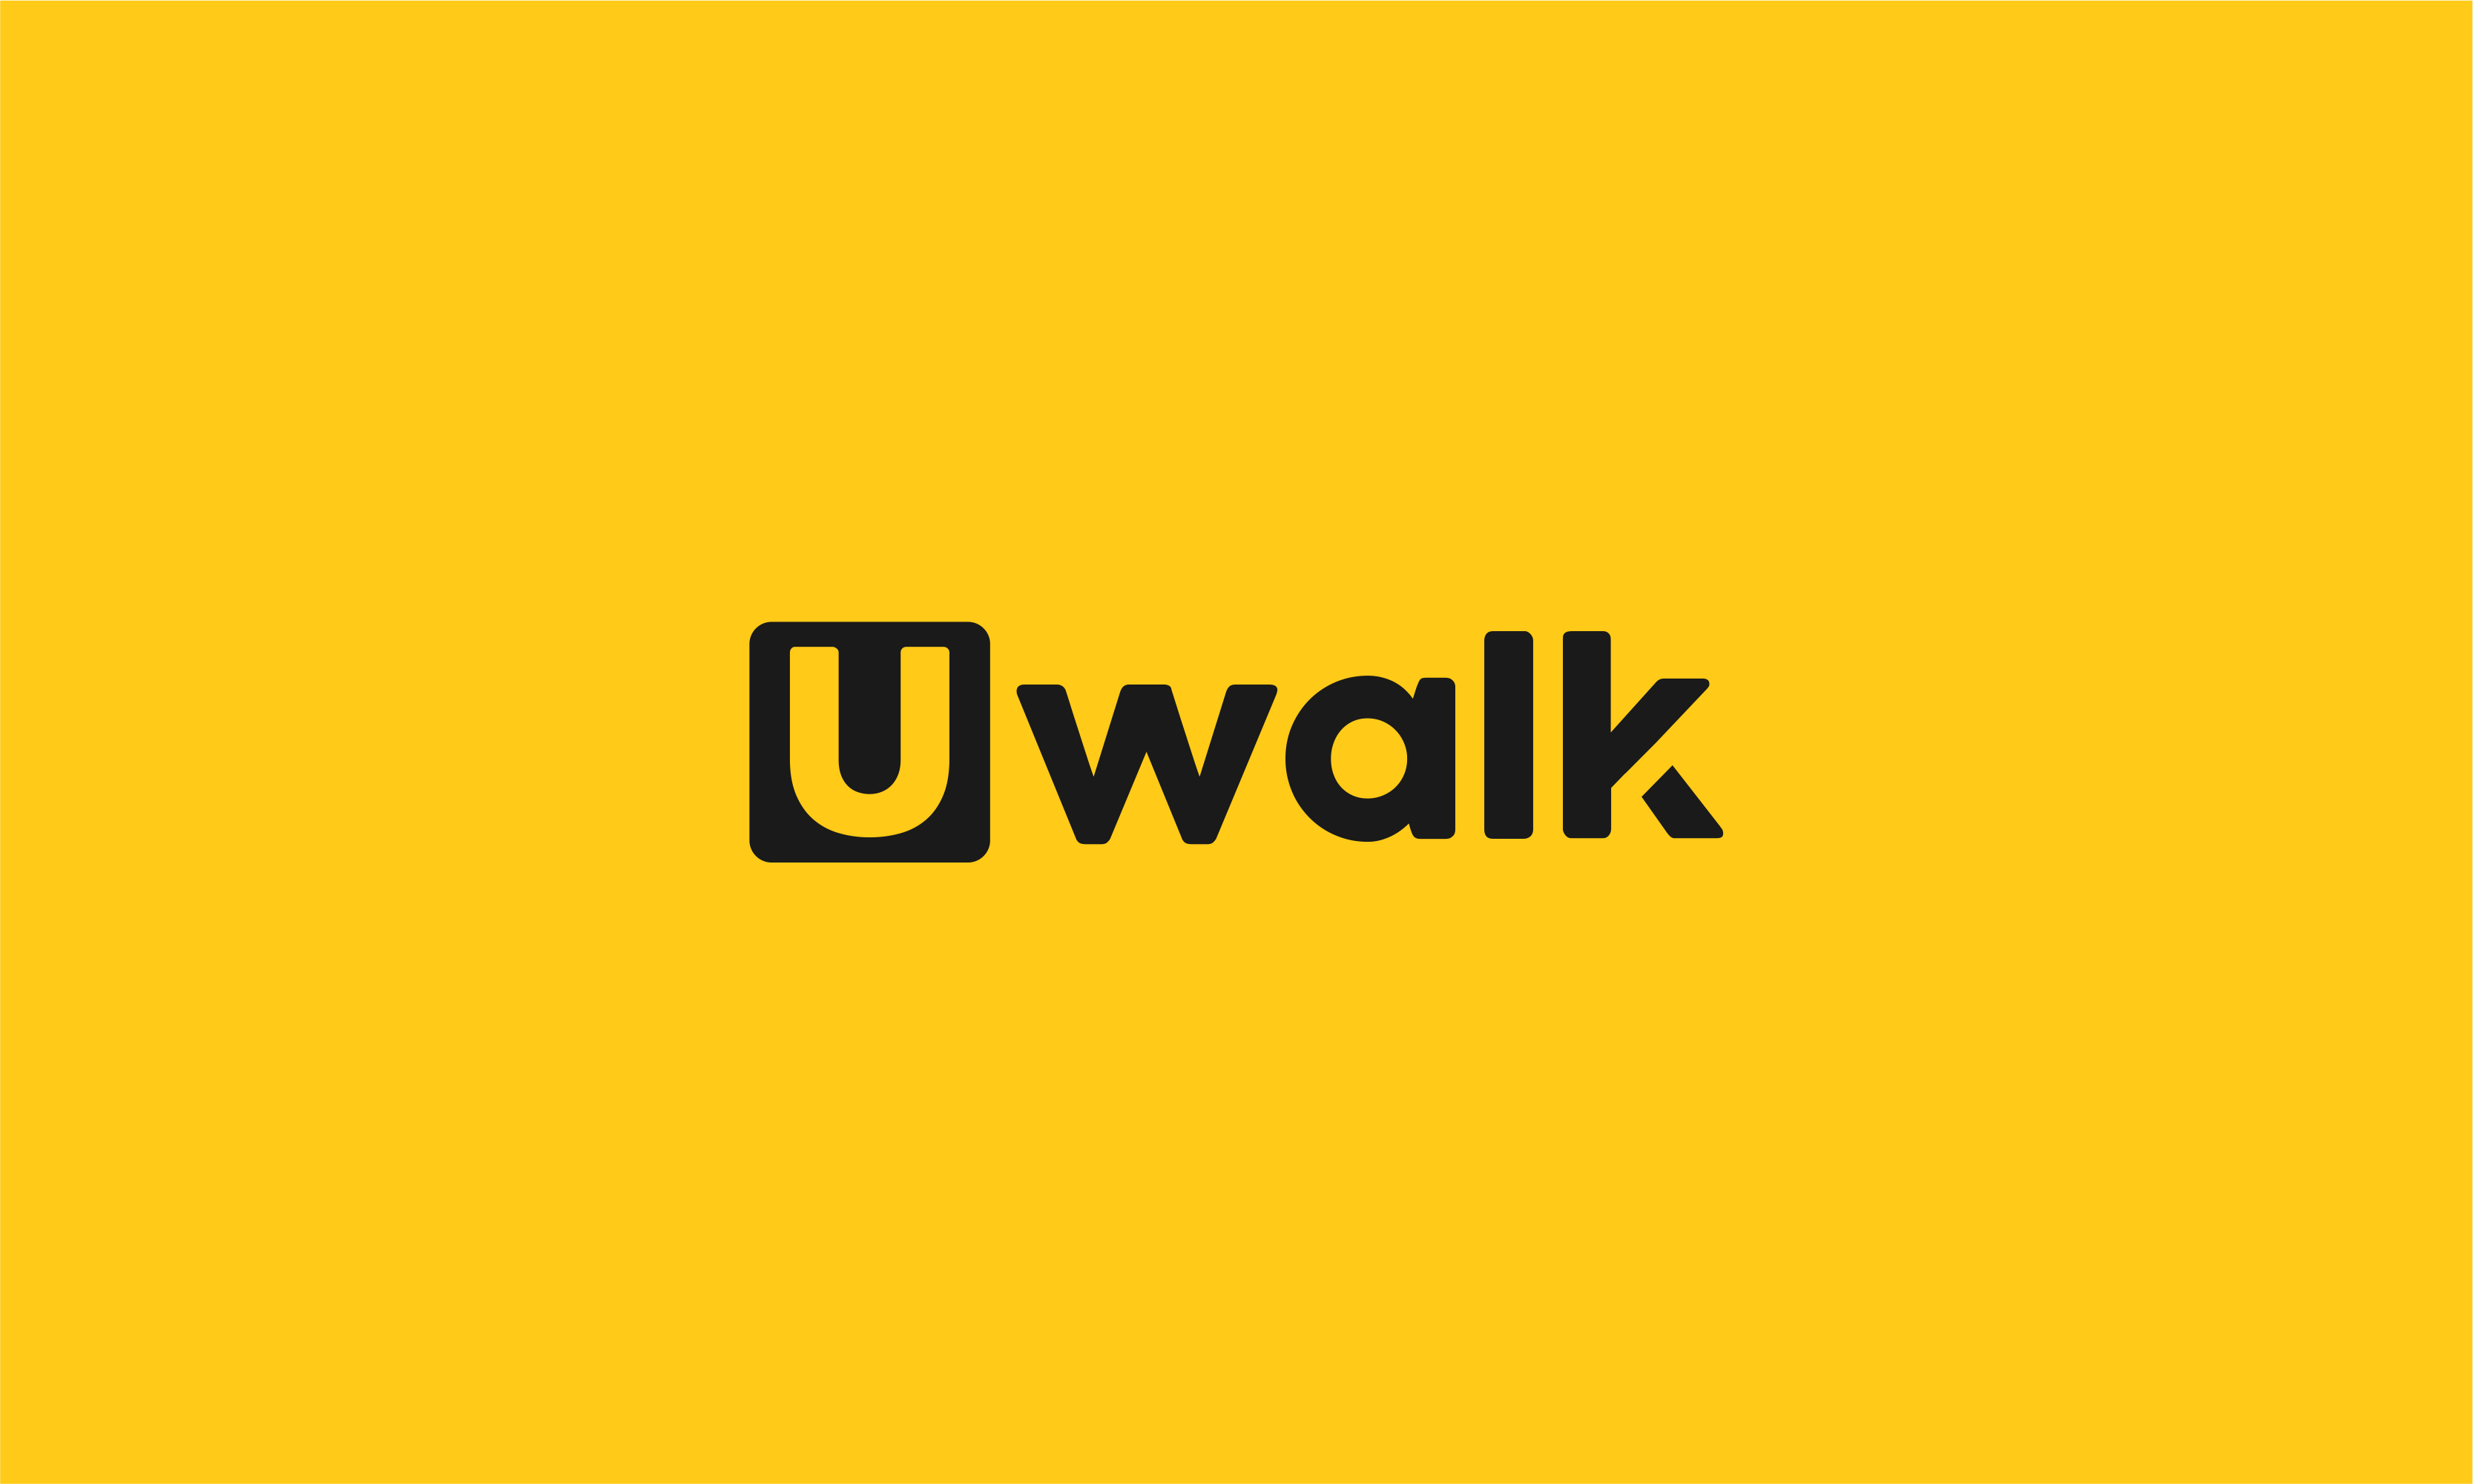 uwalk logo